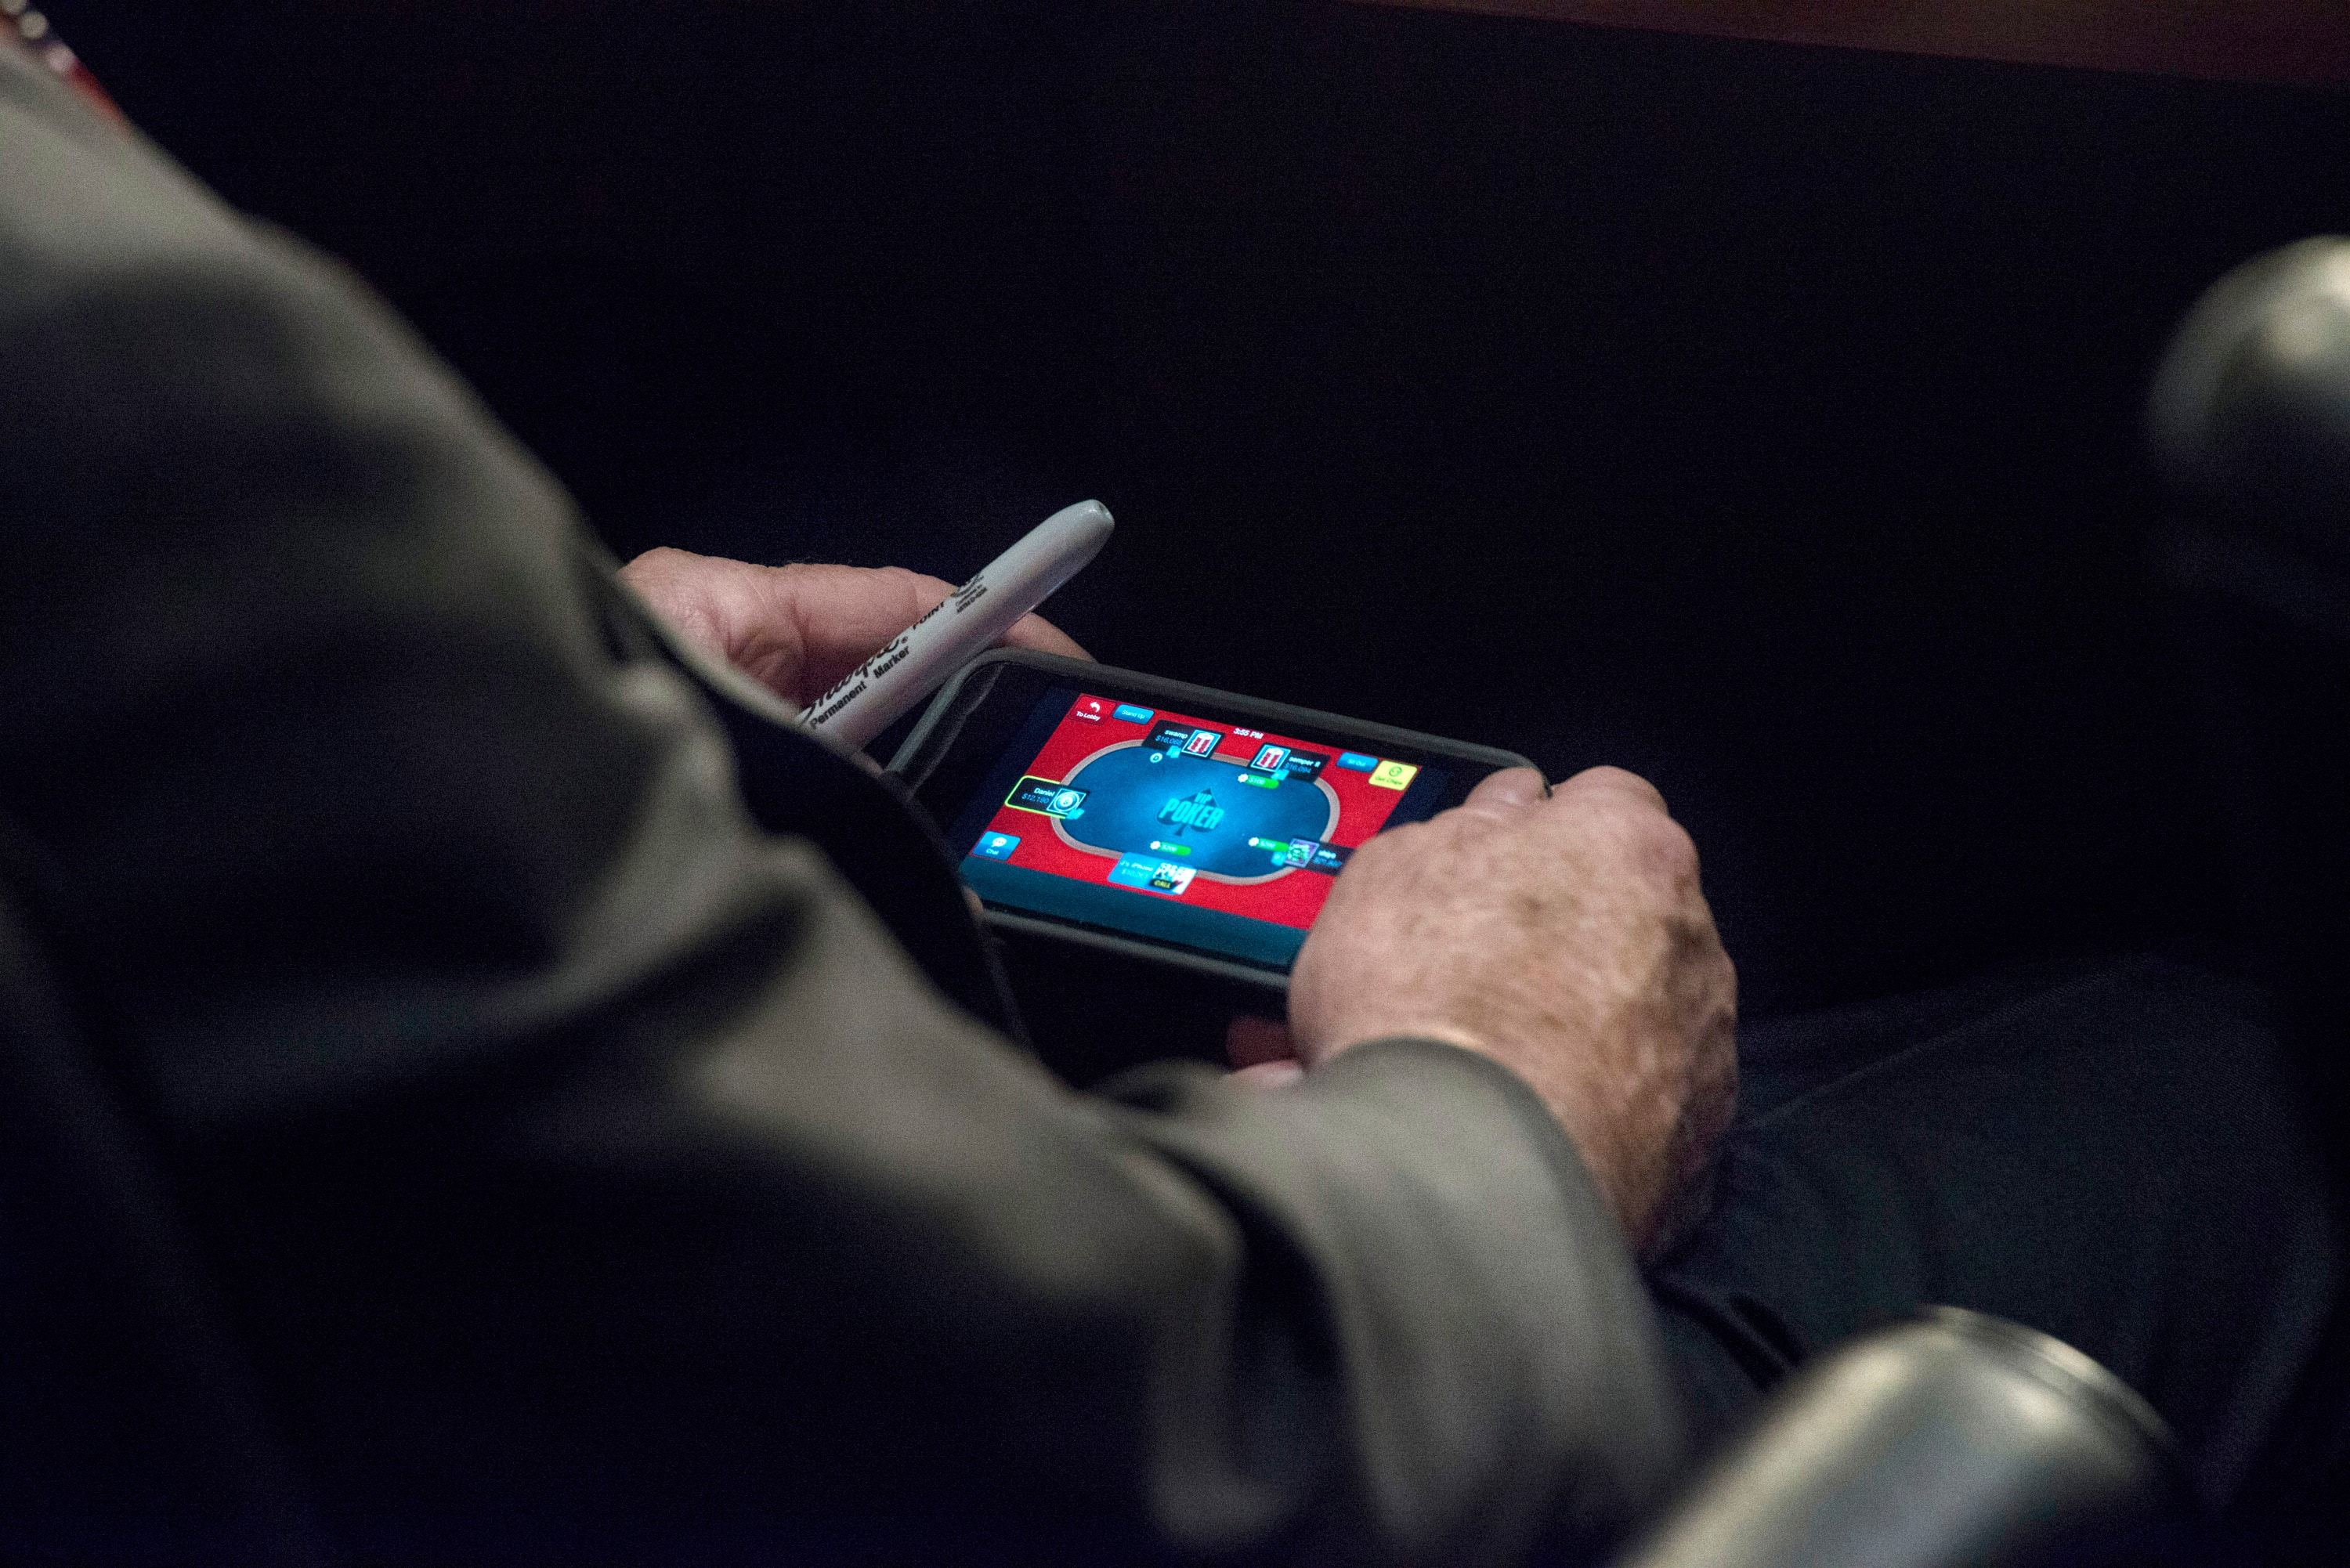 Senator John McCain plays poker on his IPhone during a U.S. Senate Committee on Foreign Relations hearing where Secretary of State JohnKerry, Secretary of Defense Chuck Hagel, and Chairman of the Joint Chiefs of Staff General Martin Dempsey testify concerning the use of force in Syria, on Capitol Hill in Washington DC, Tuesday, September 3, 2013. (Photo by Melina Mara/The Washington Post)